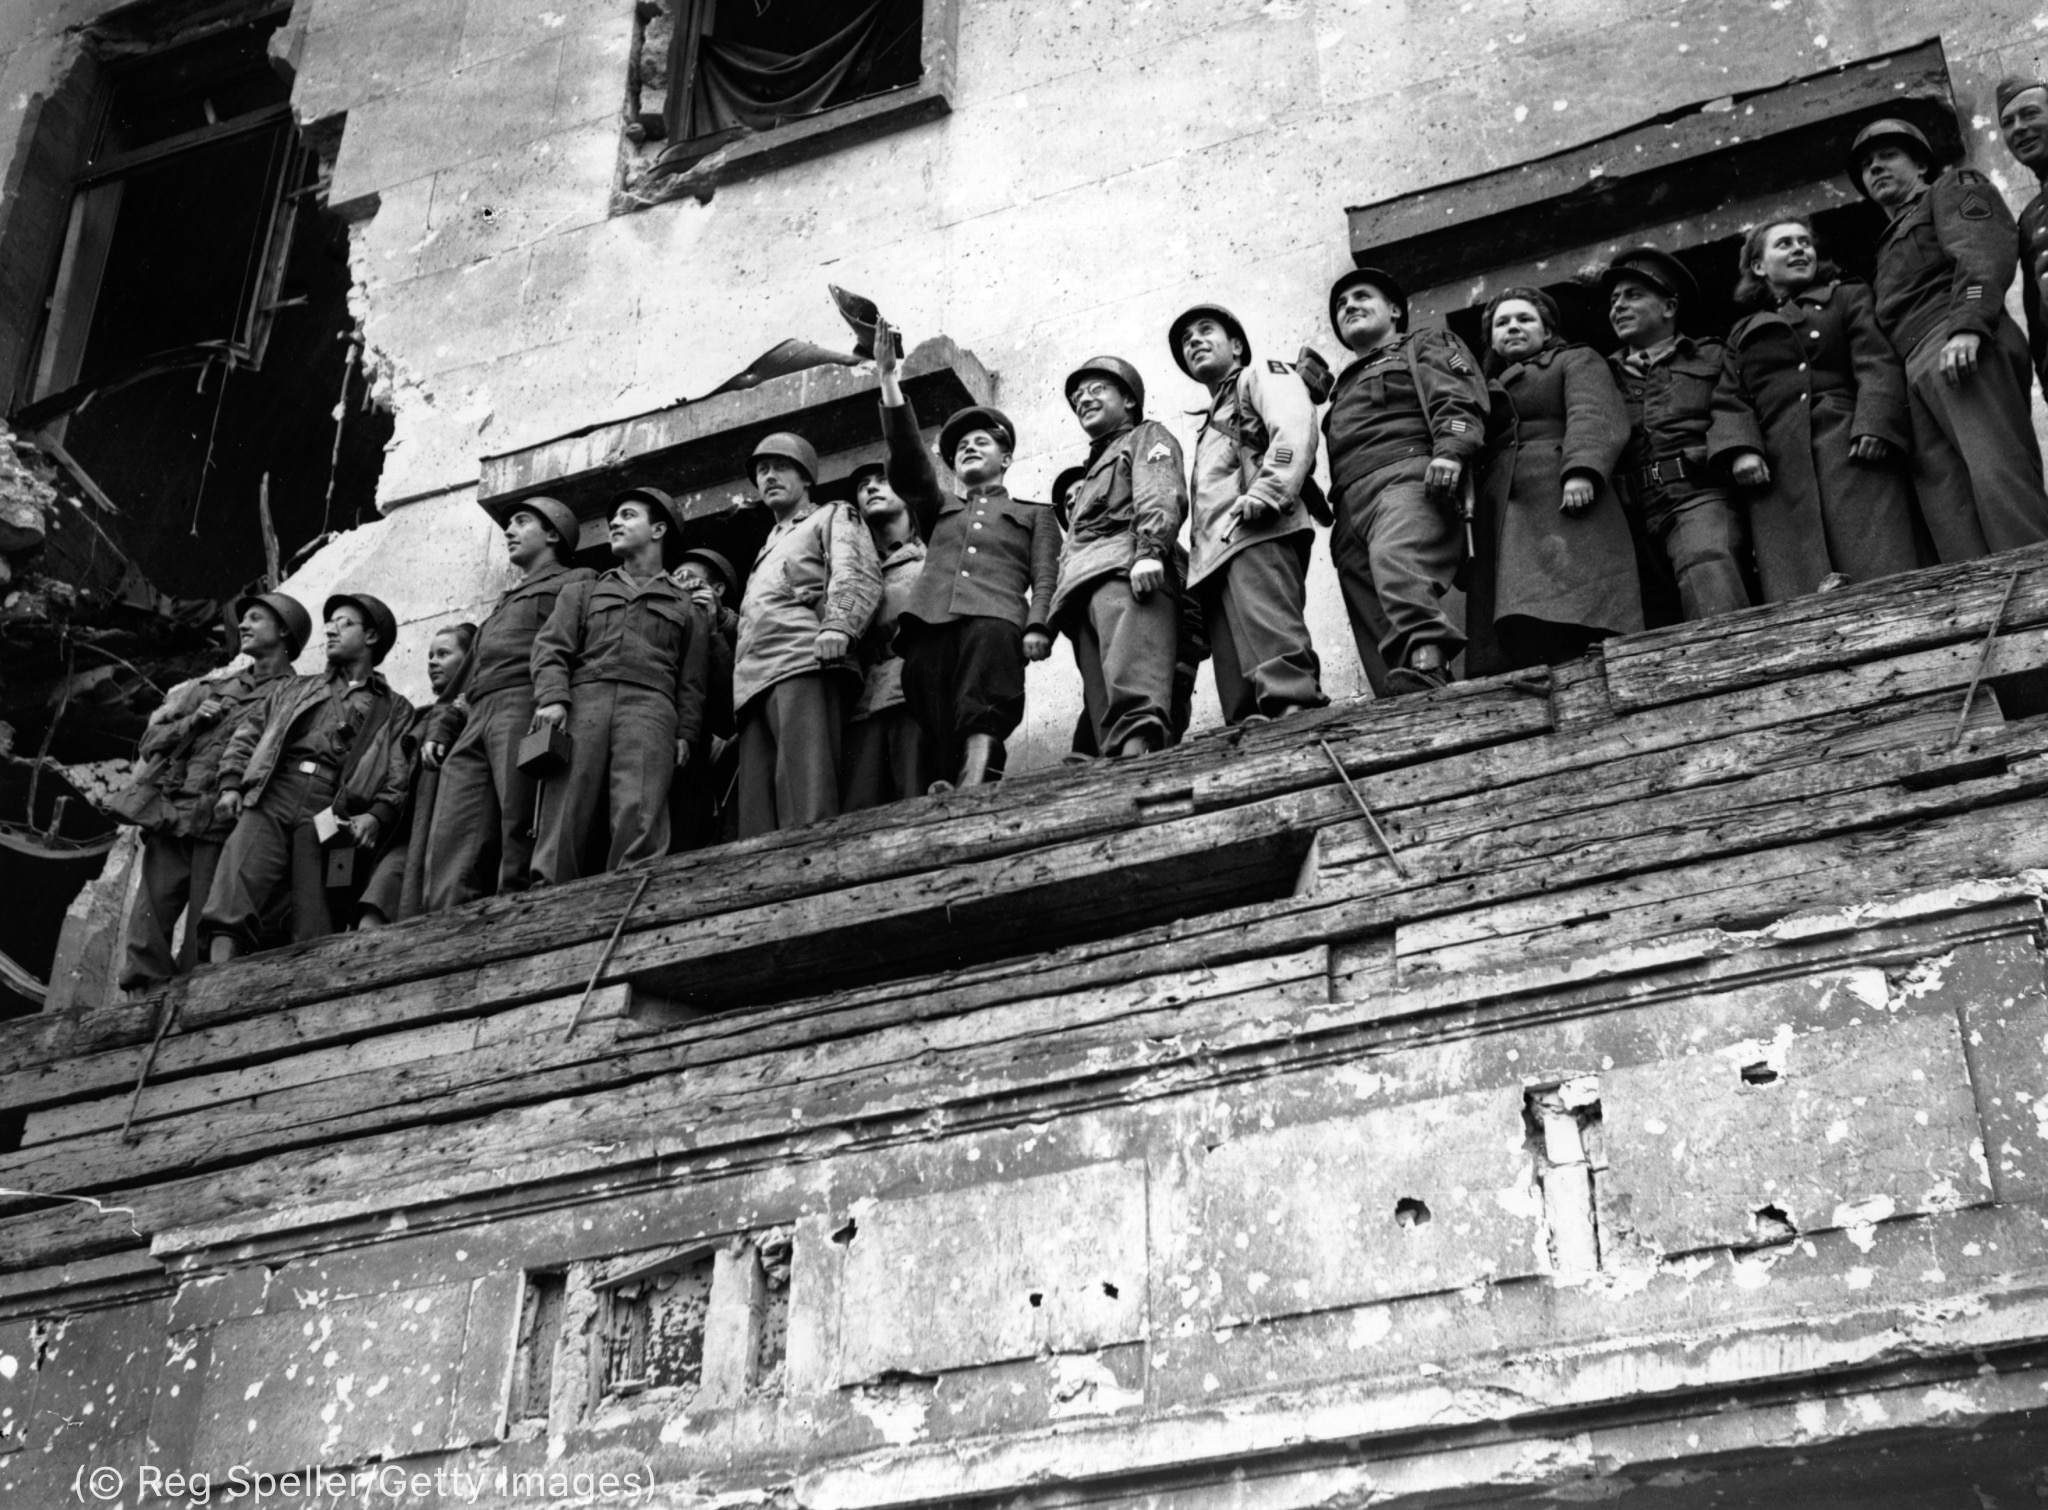 Row of soldiers standing on ledge (© Reg Speller/Getty Images)